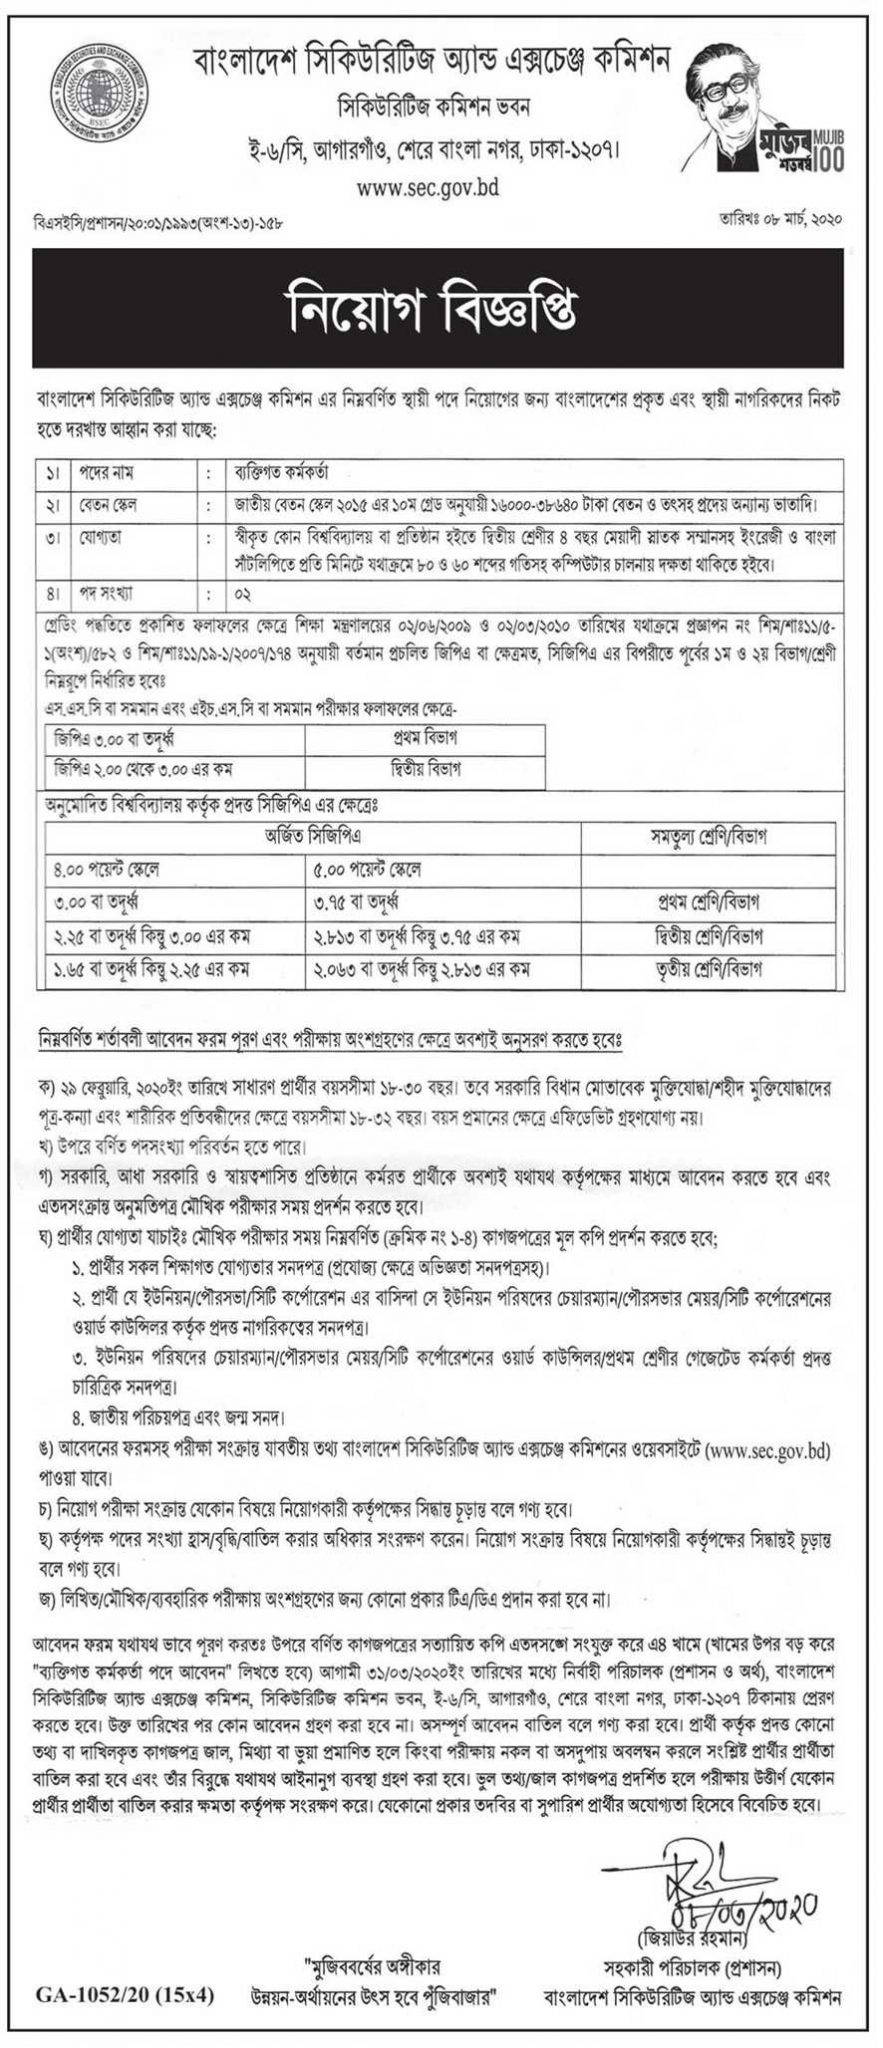 Bangladesh Securities and Exchange Commission Job Circular 2020